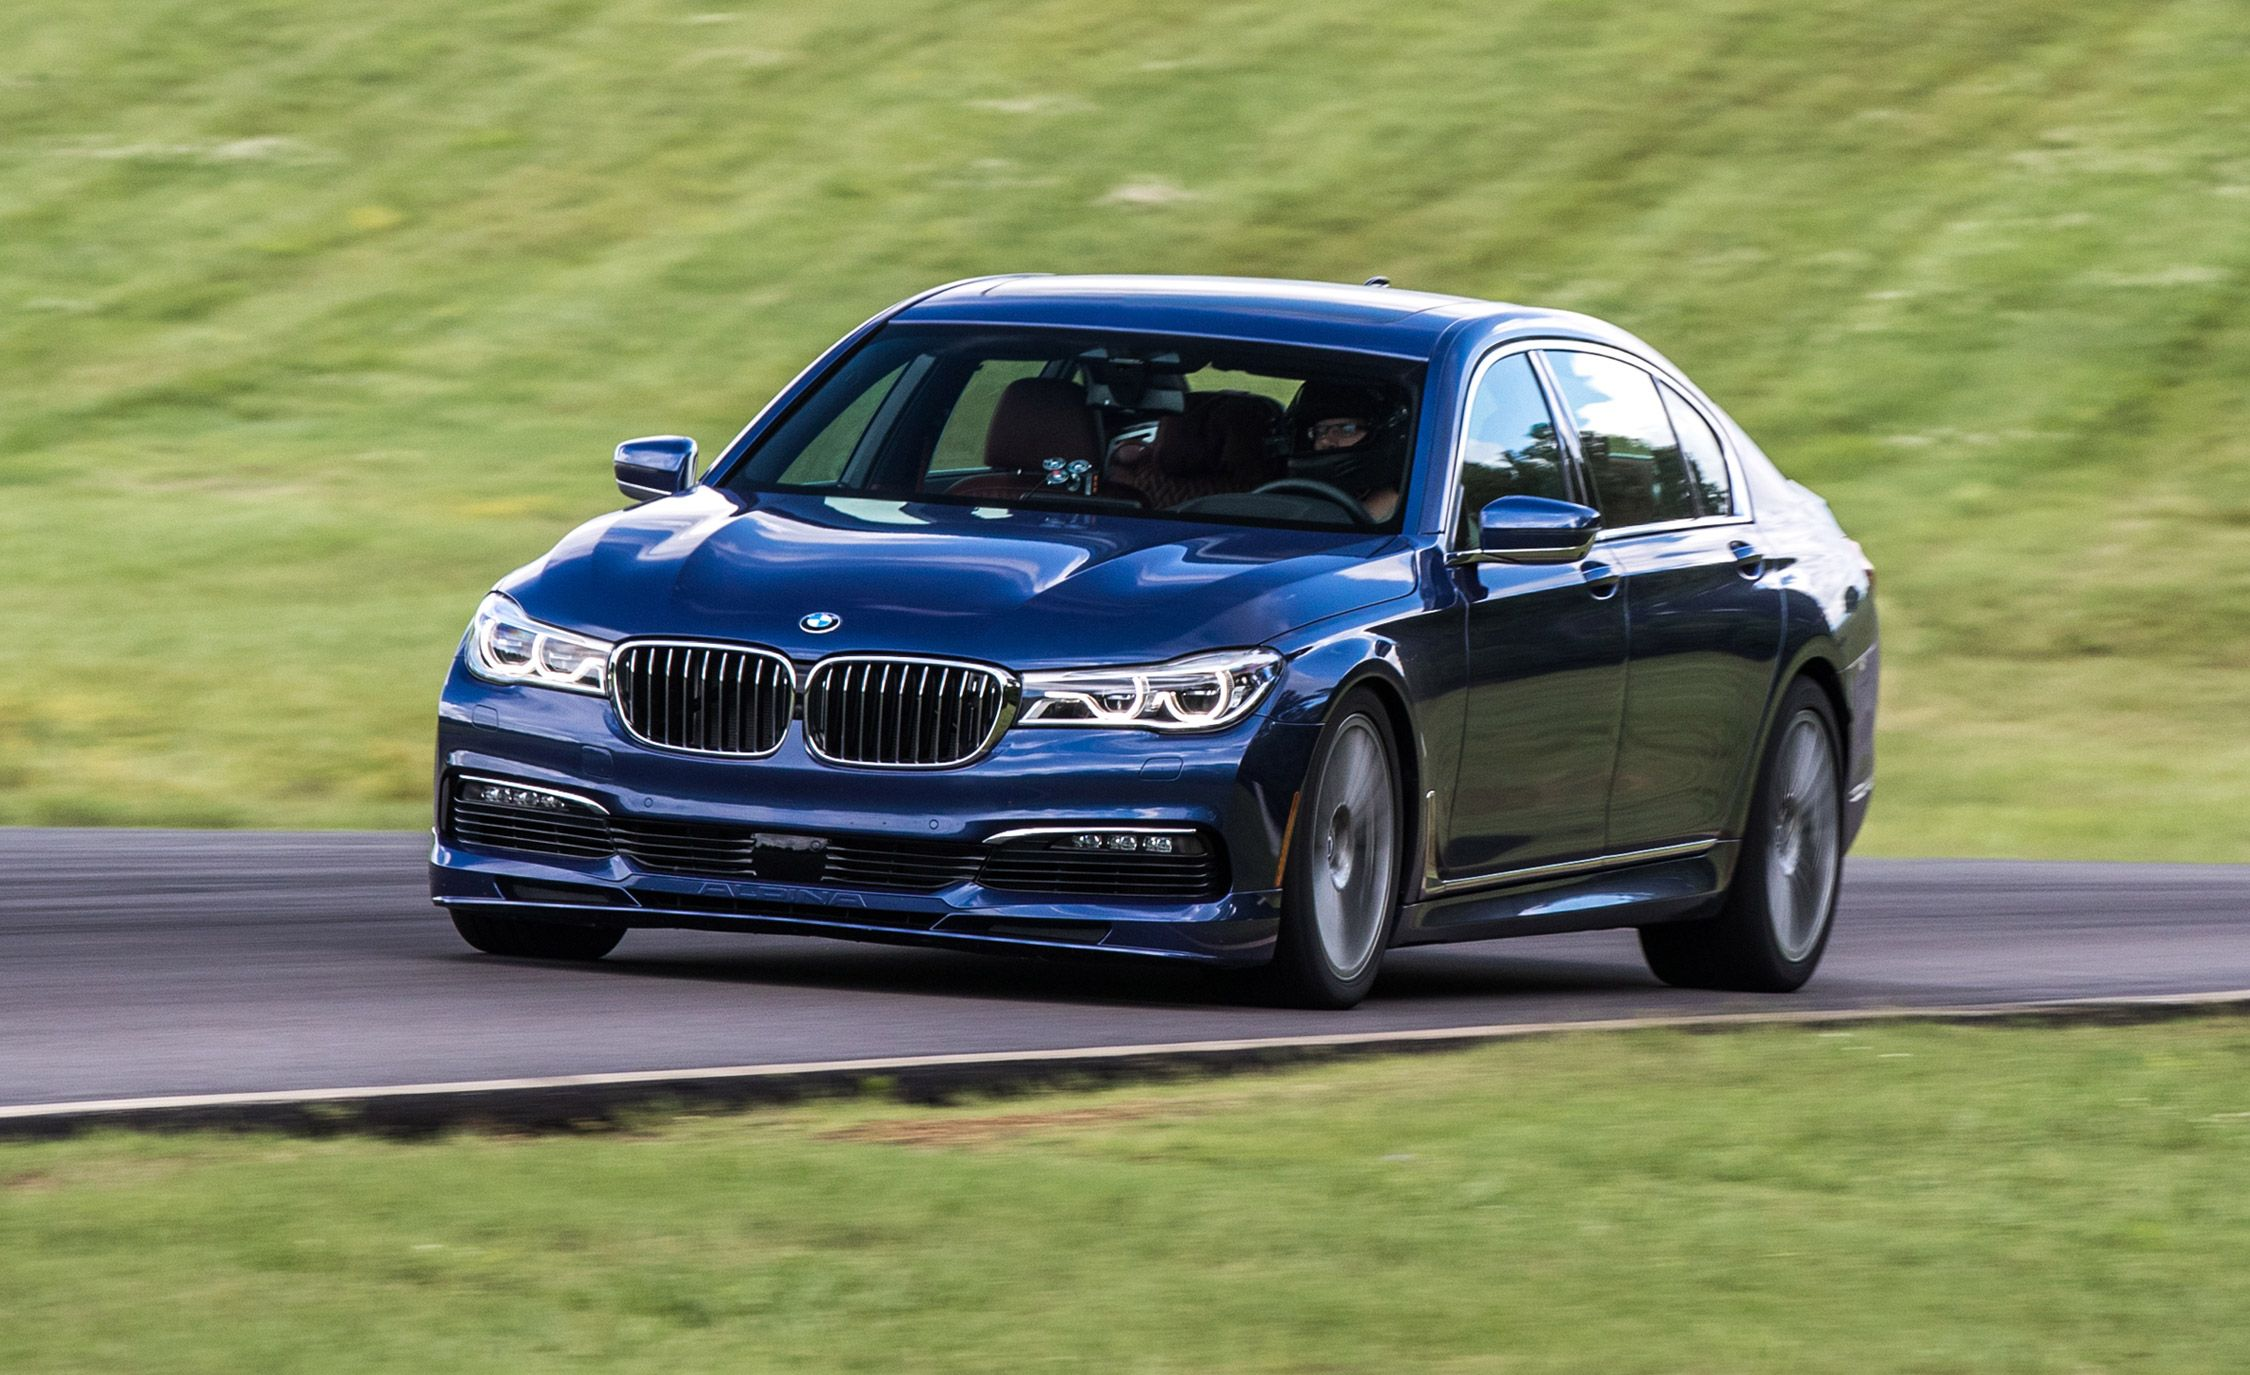 Bmw Alpina B7 Xdrive At Lightning Lap 2017 Feature Car And Driver